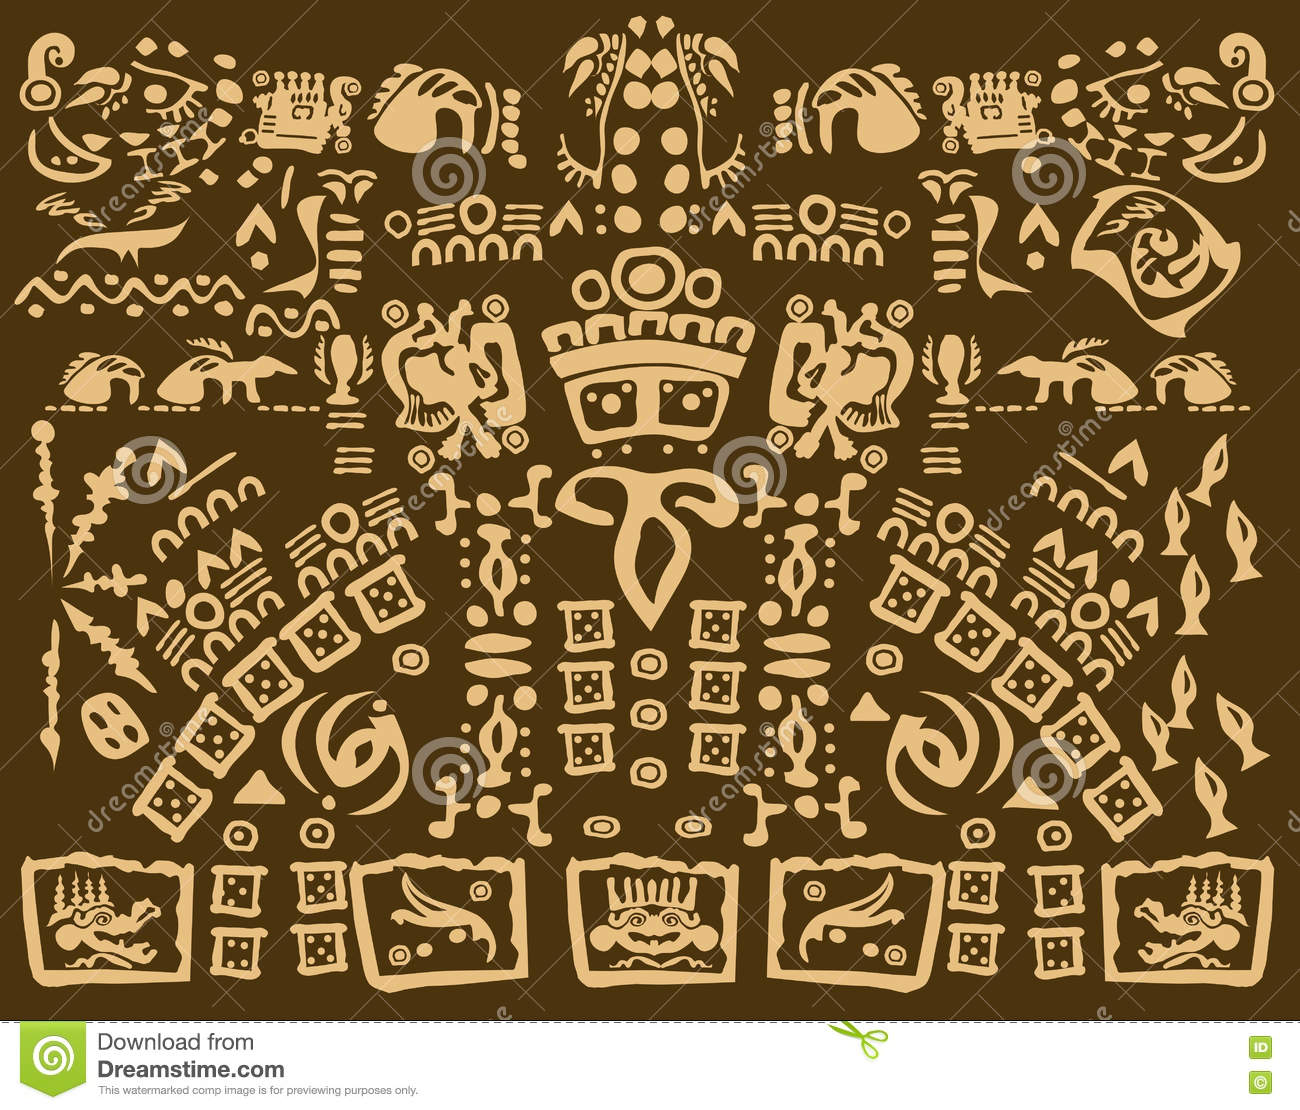 Mayan Drawing Of Ancient Symbols Stock Vector Illustration Of